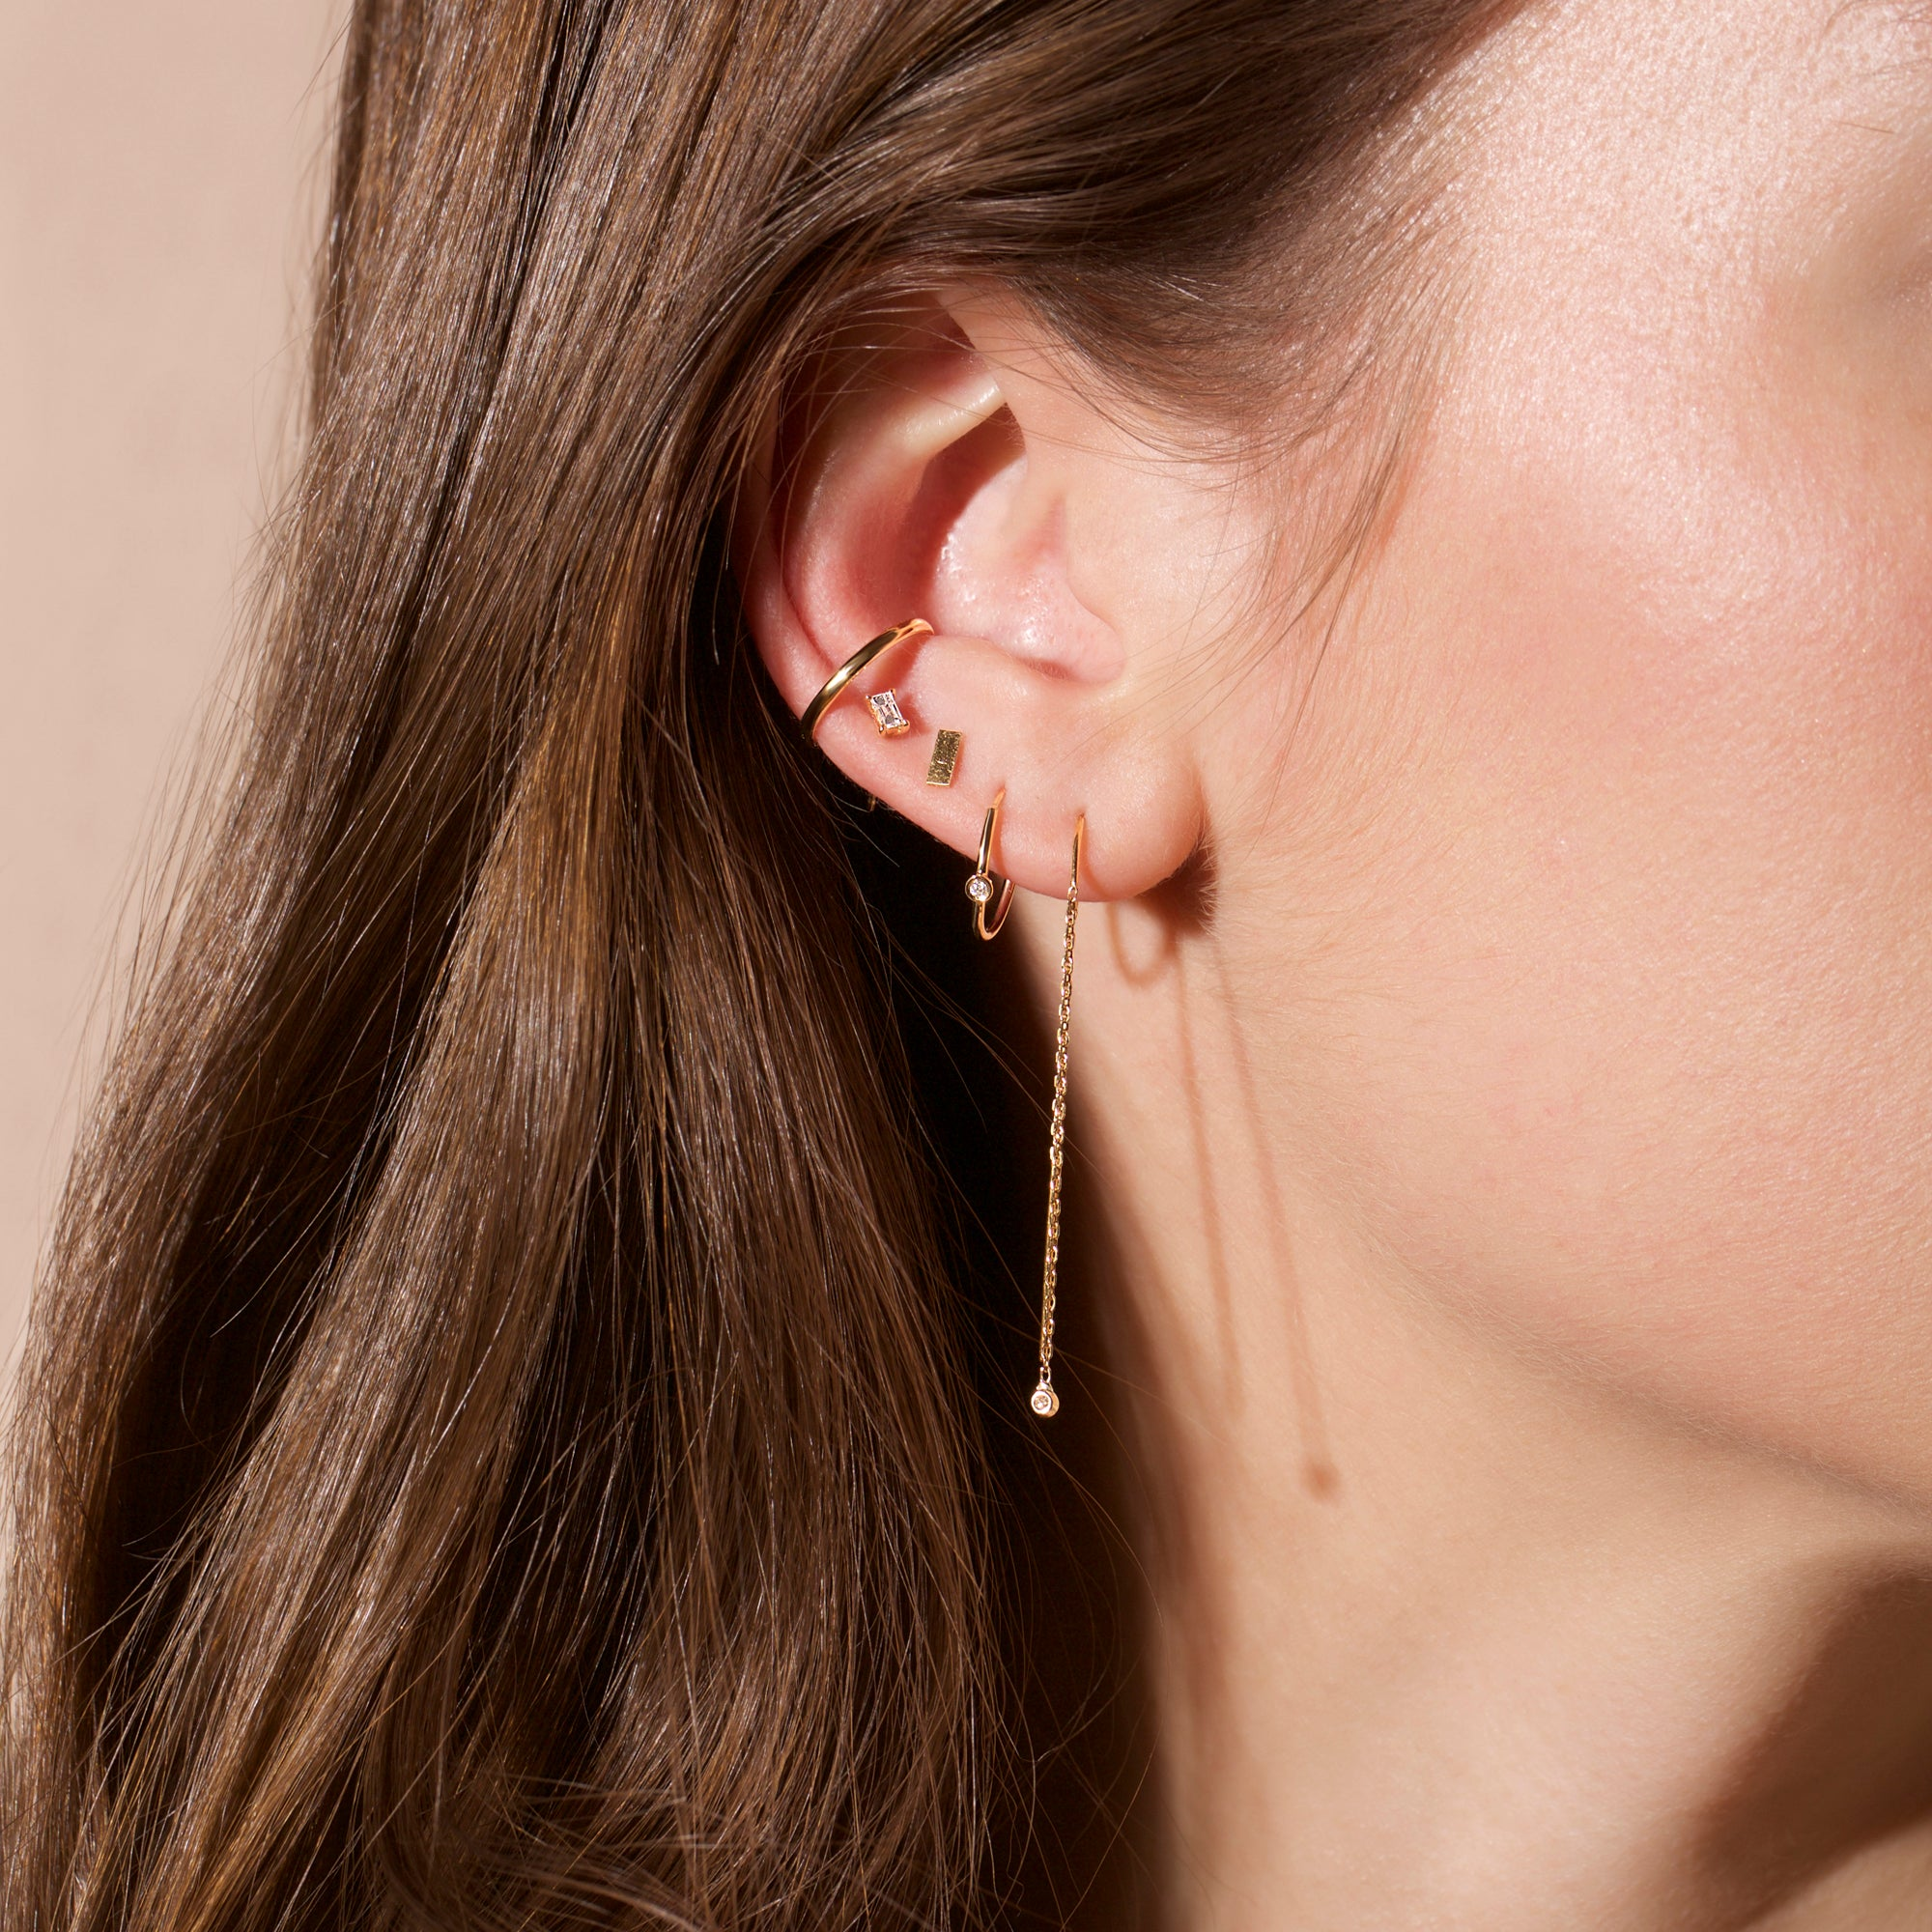 Multiple Ear Piercing Earrings